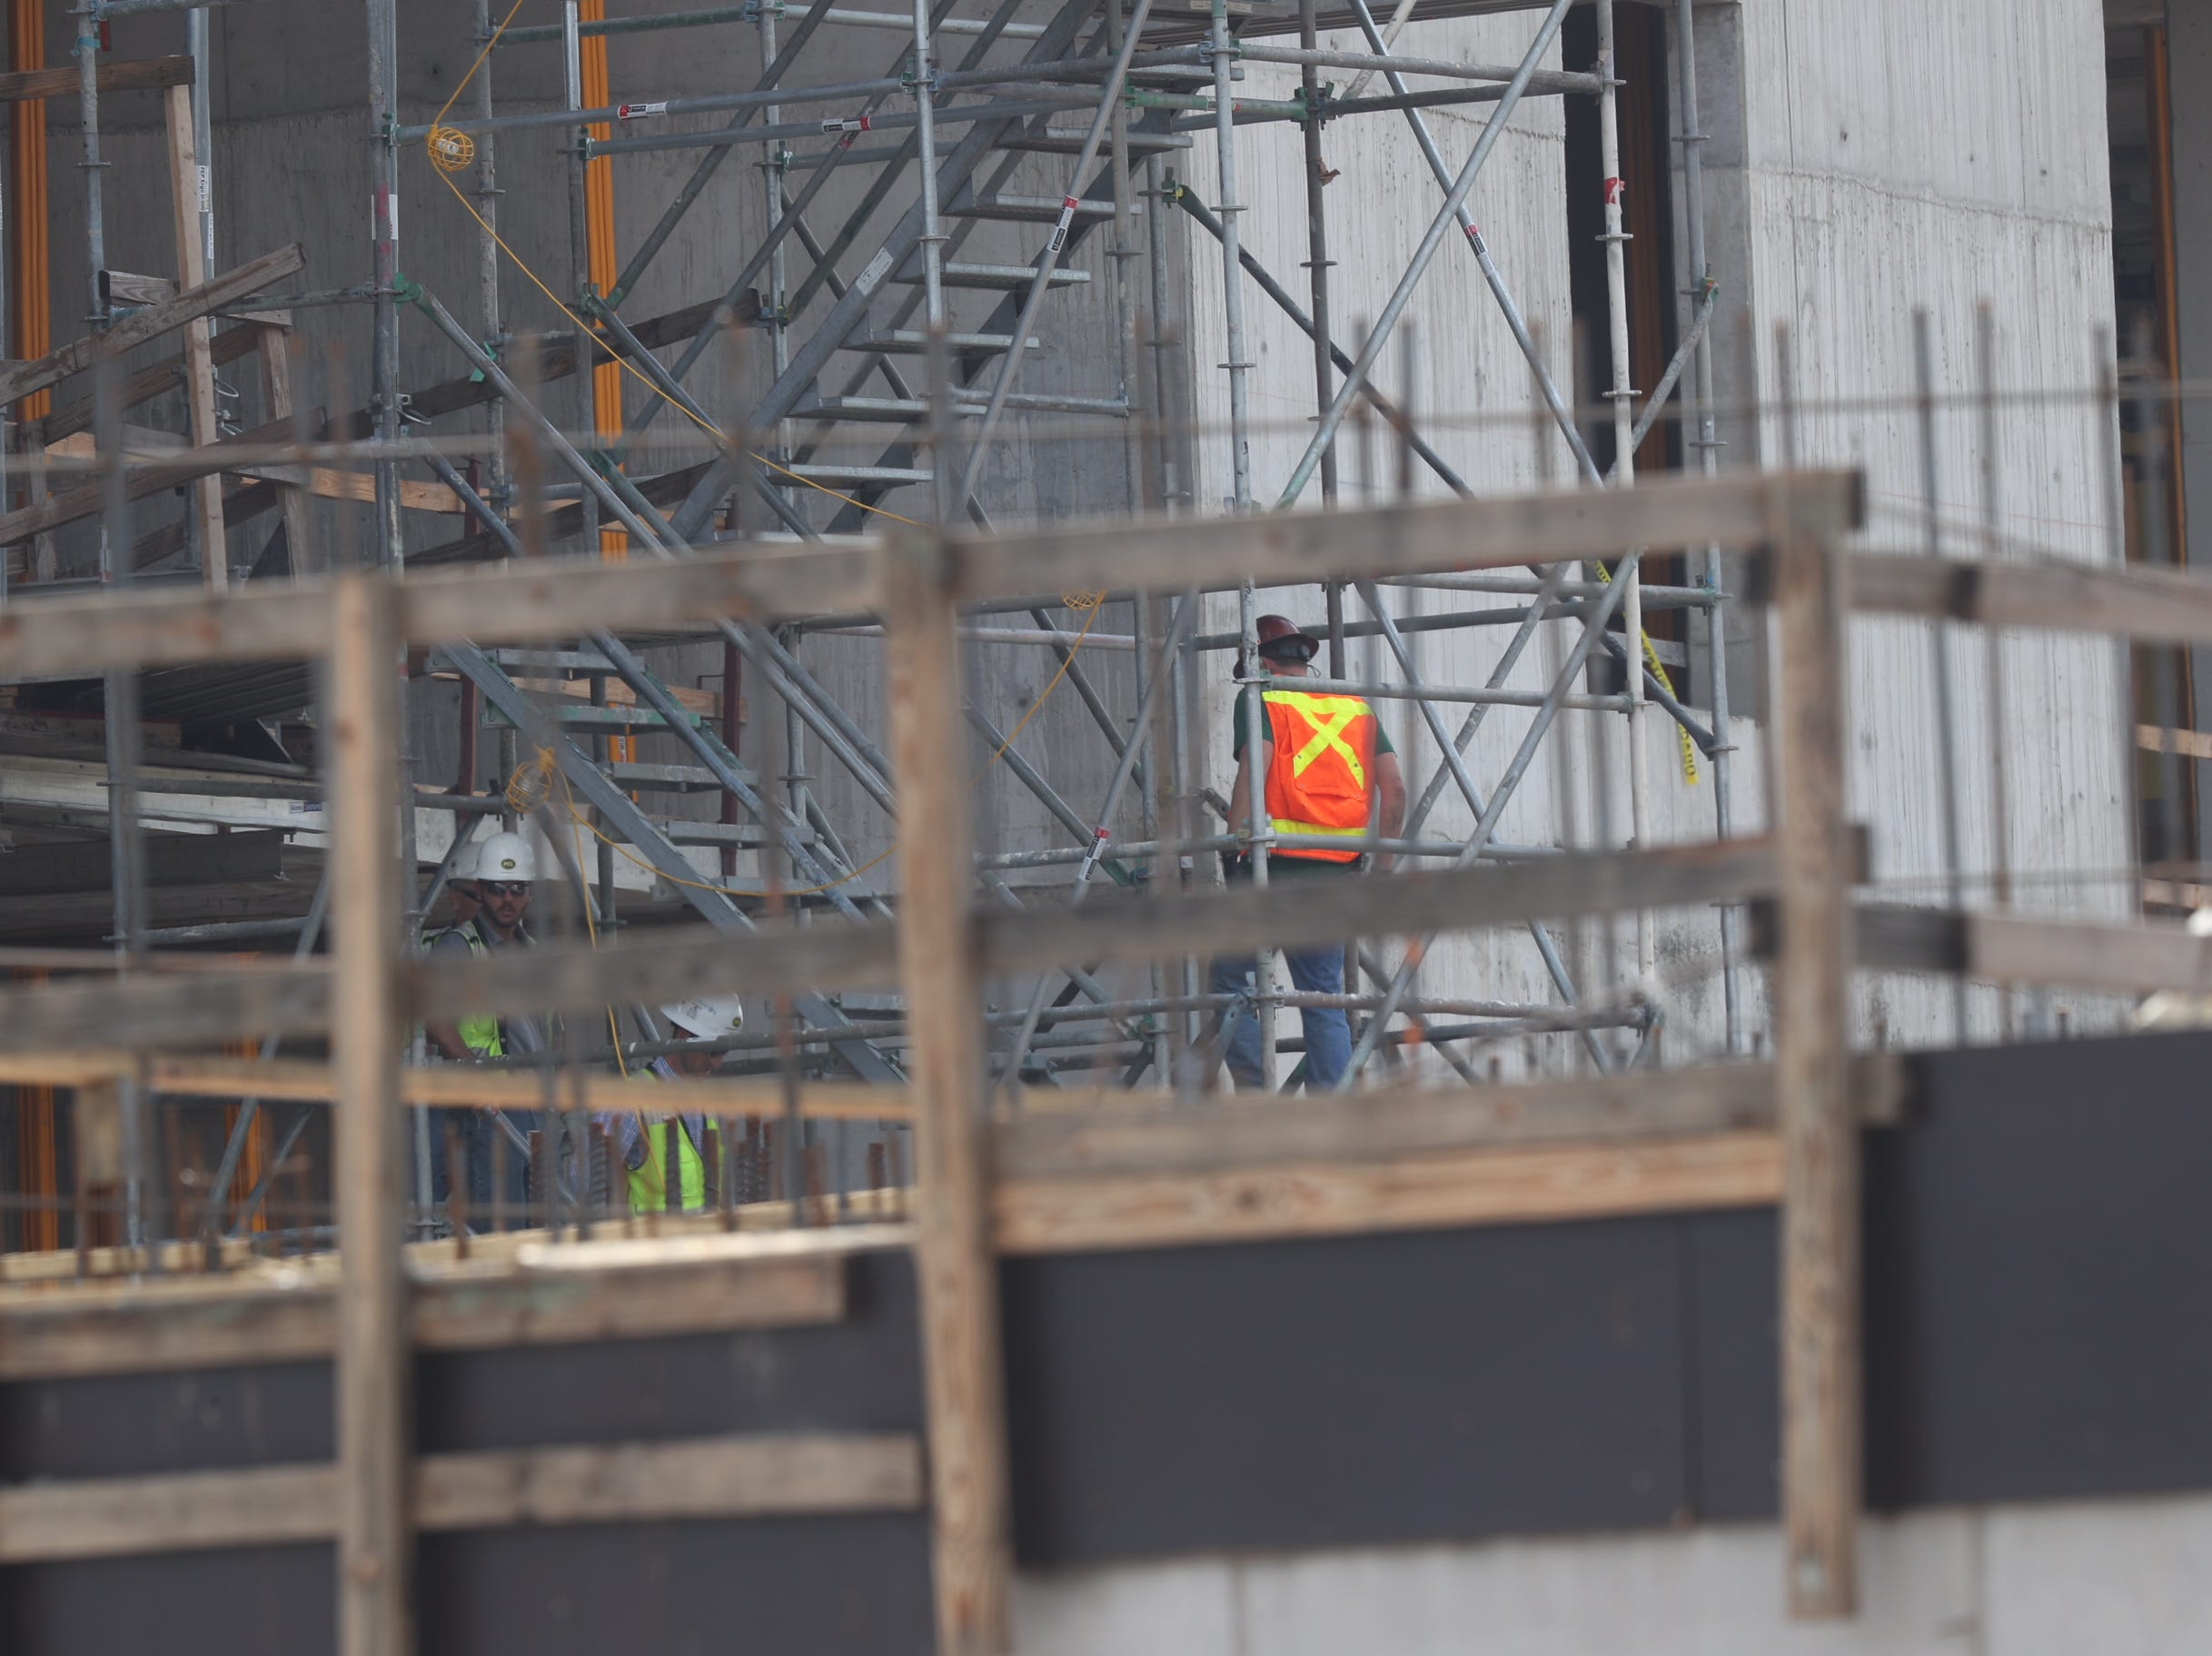 Two workers were killed early Wednesday morning after scaffolding collapsed falling seven stories to their deaths.